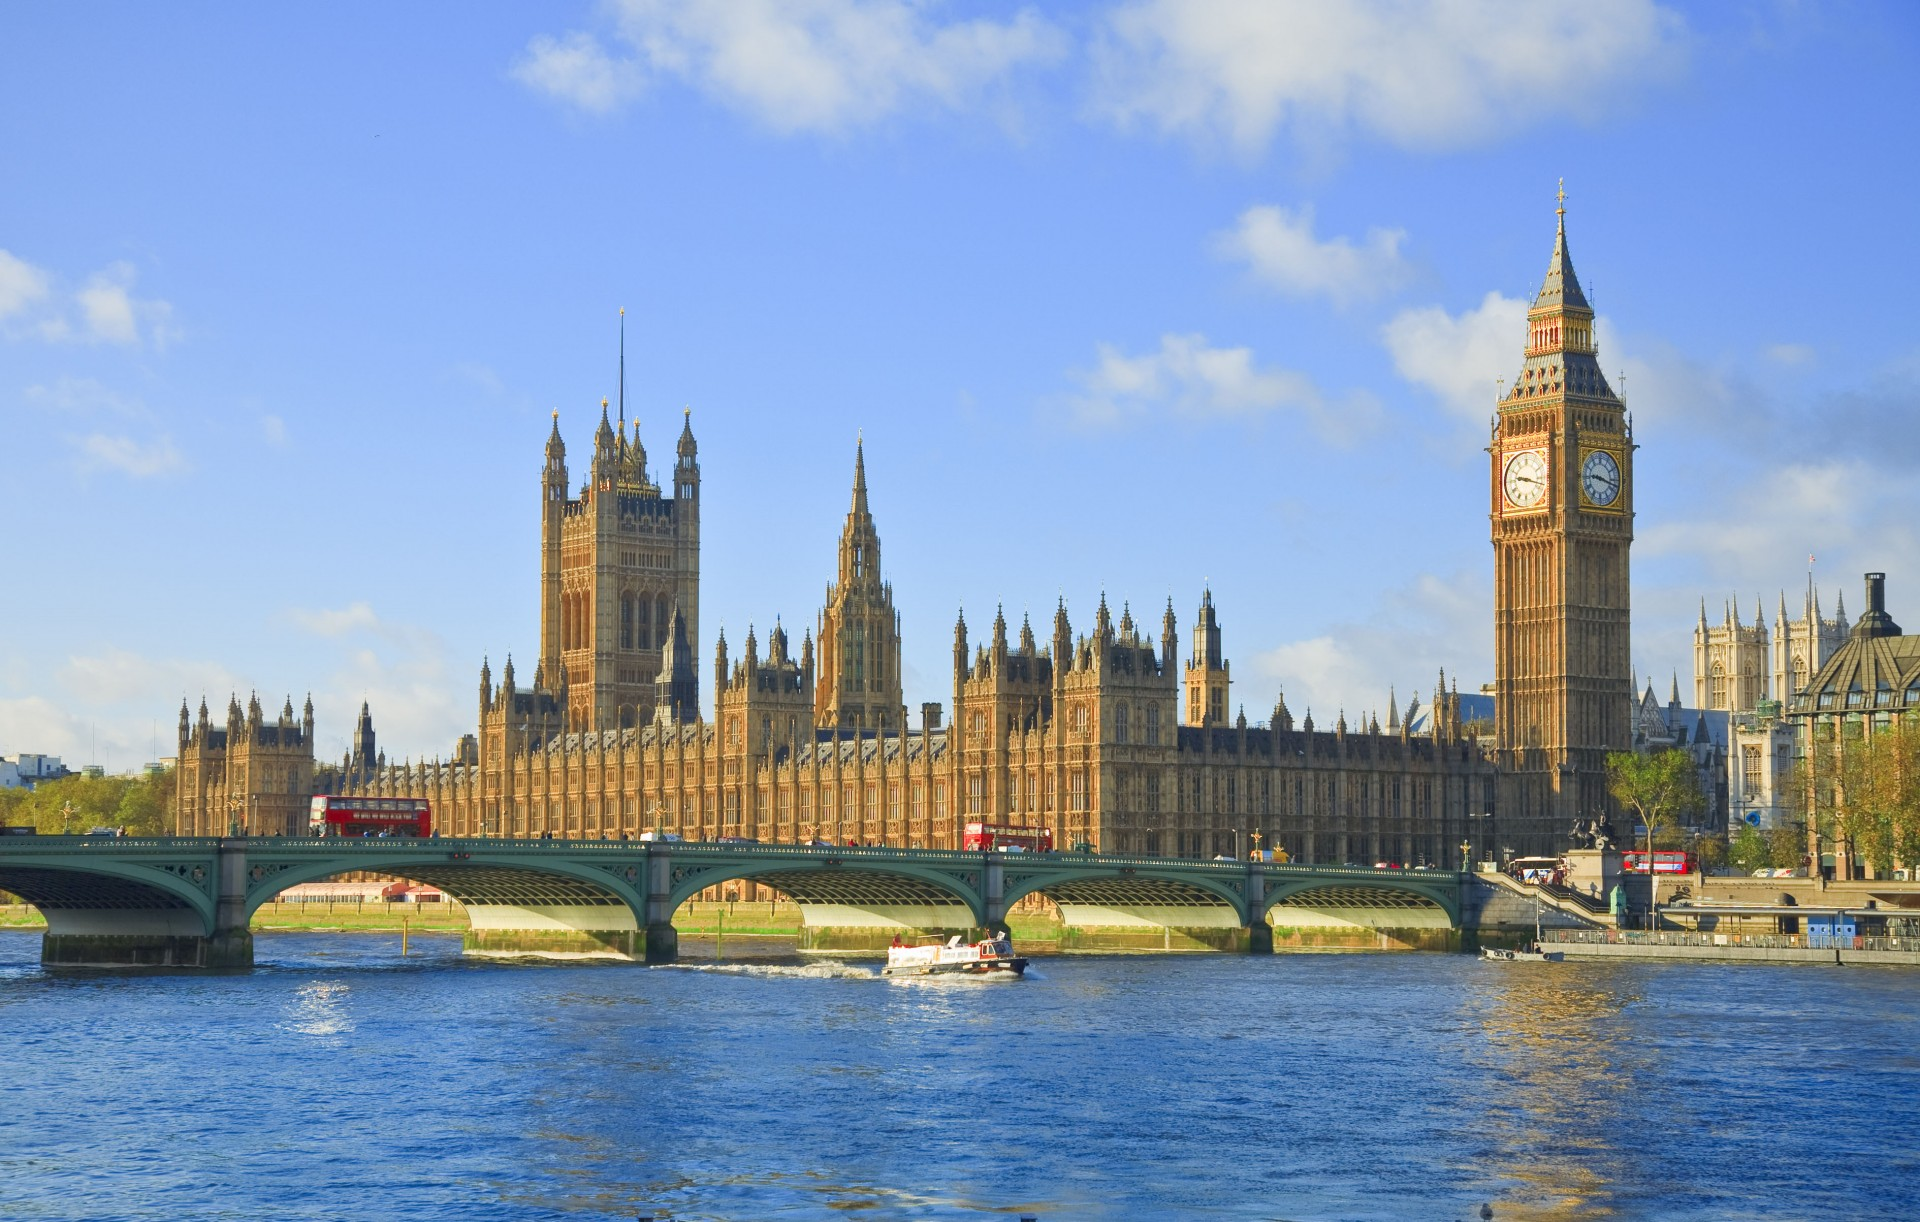 Houses of Parliament Tour - Guide London